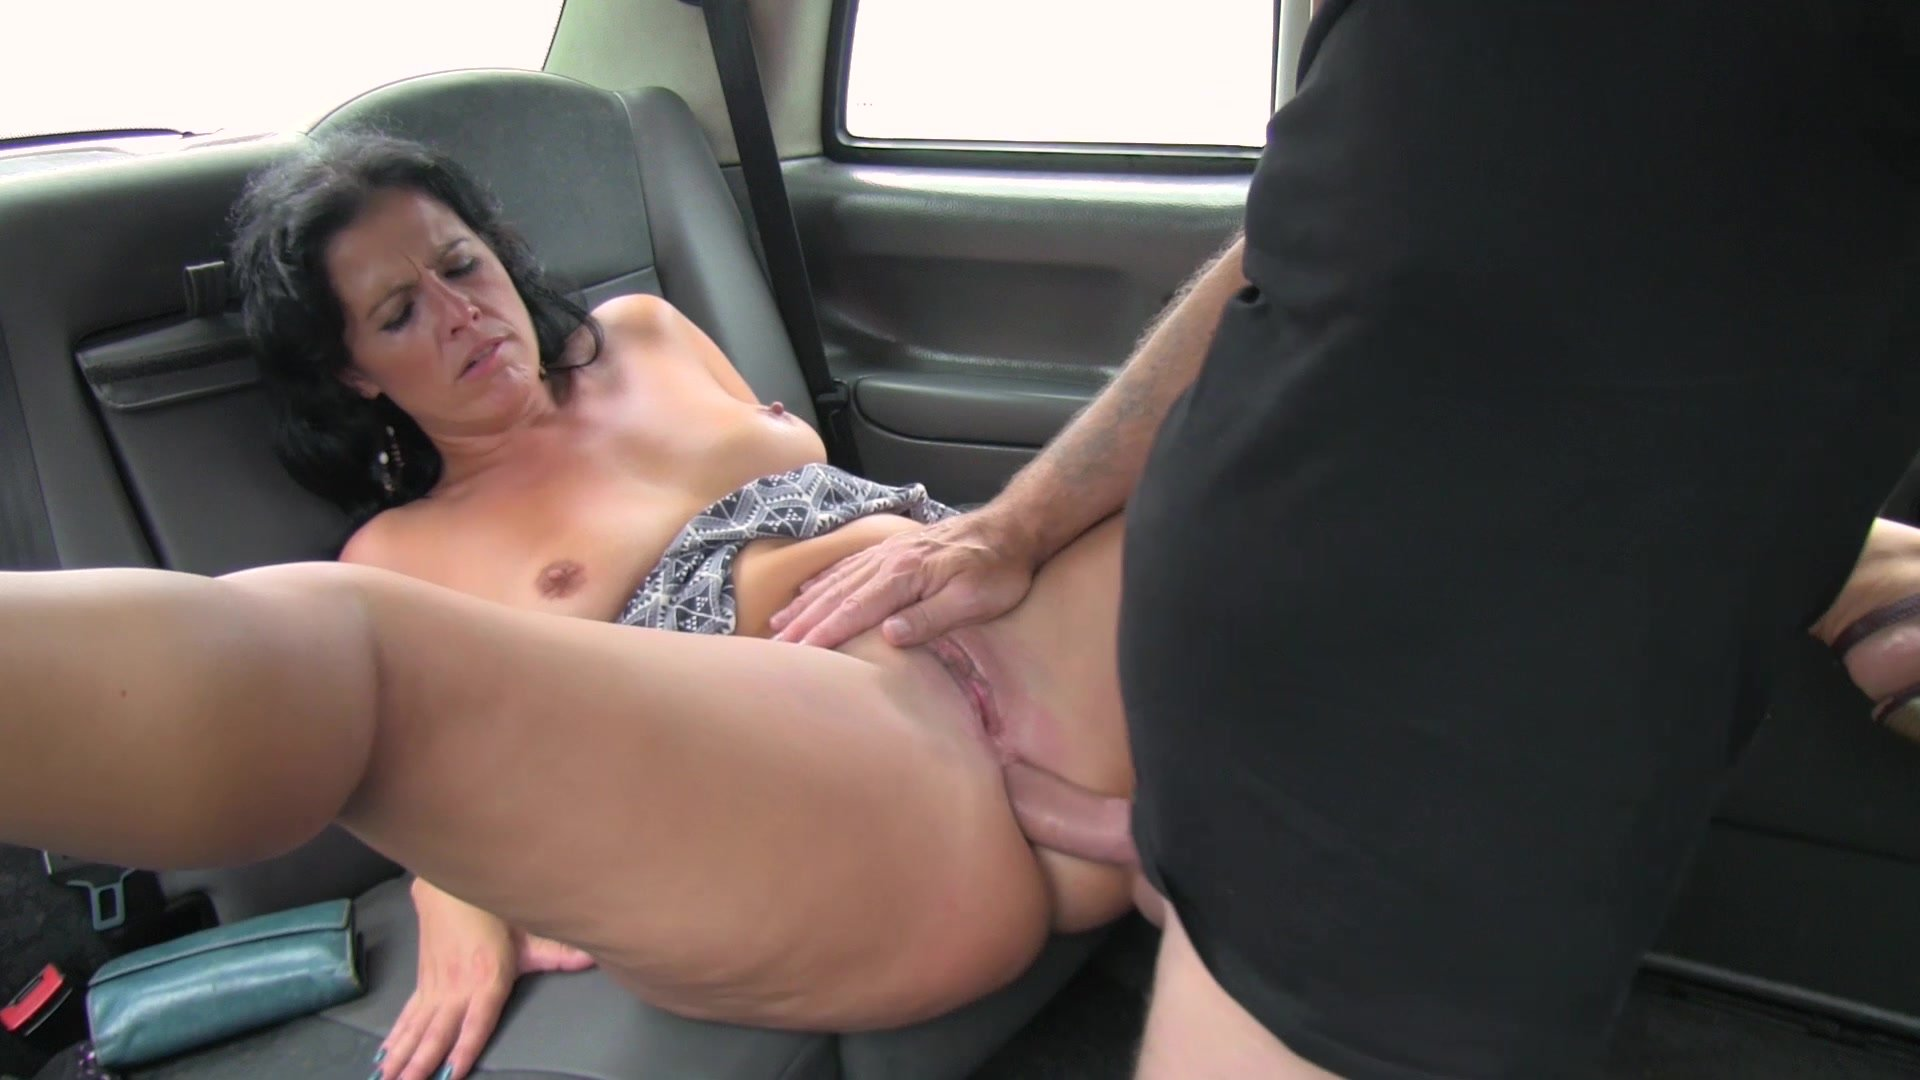 Danielle maye fake taxi free adult porn clips